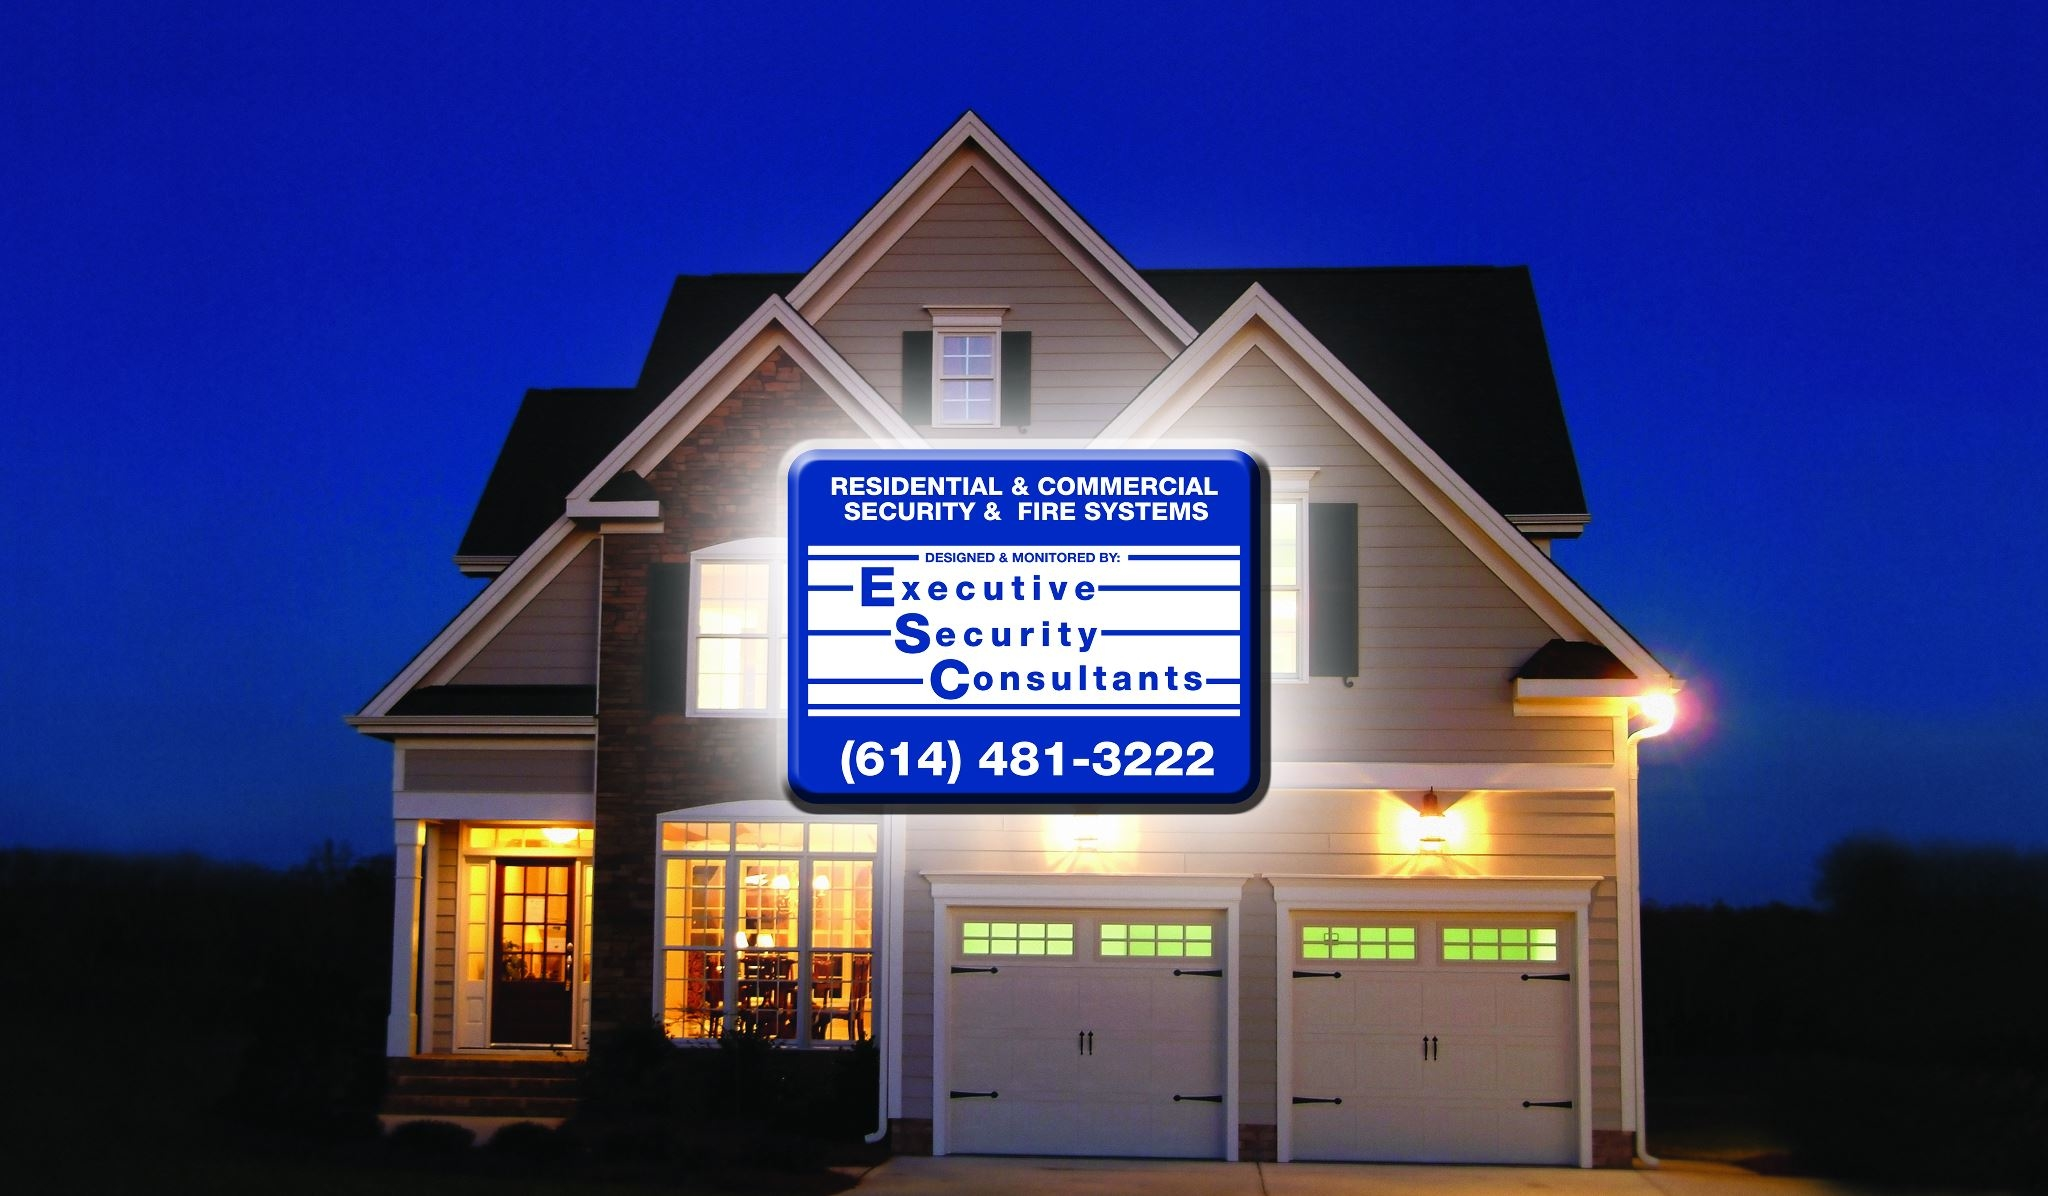 Executive Security Consultants image 3